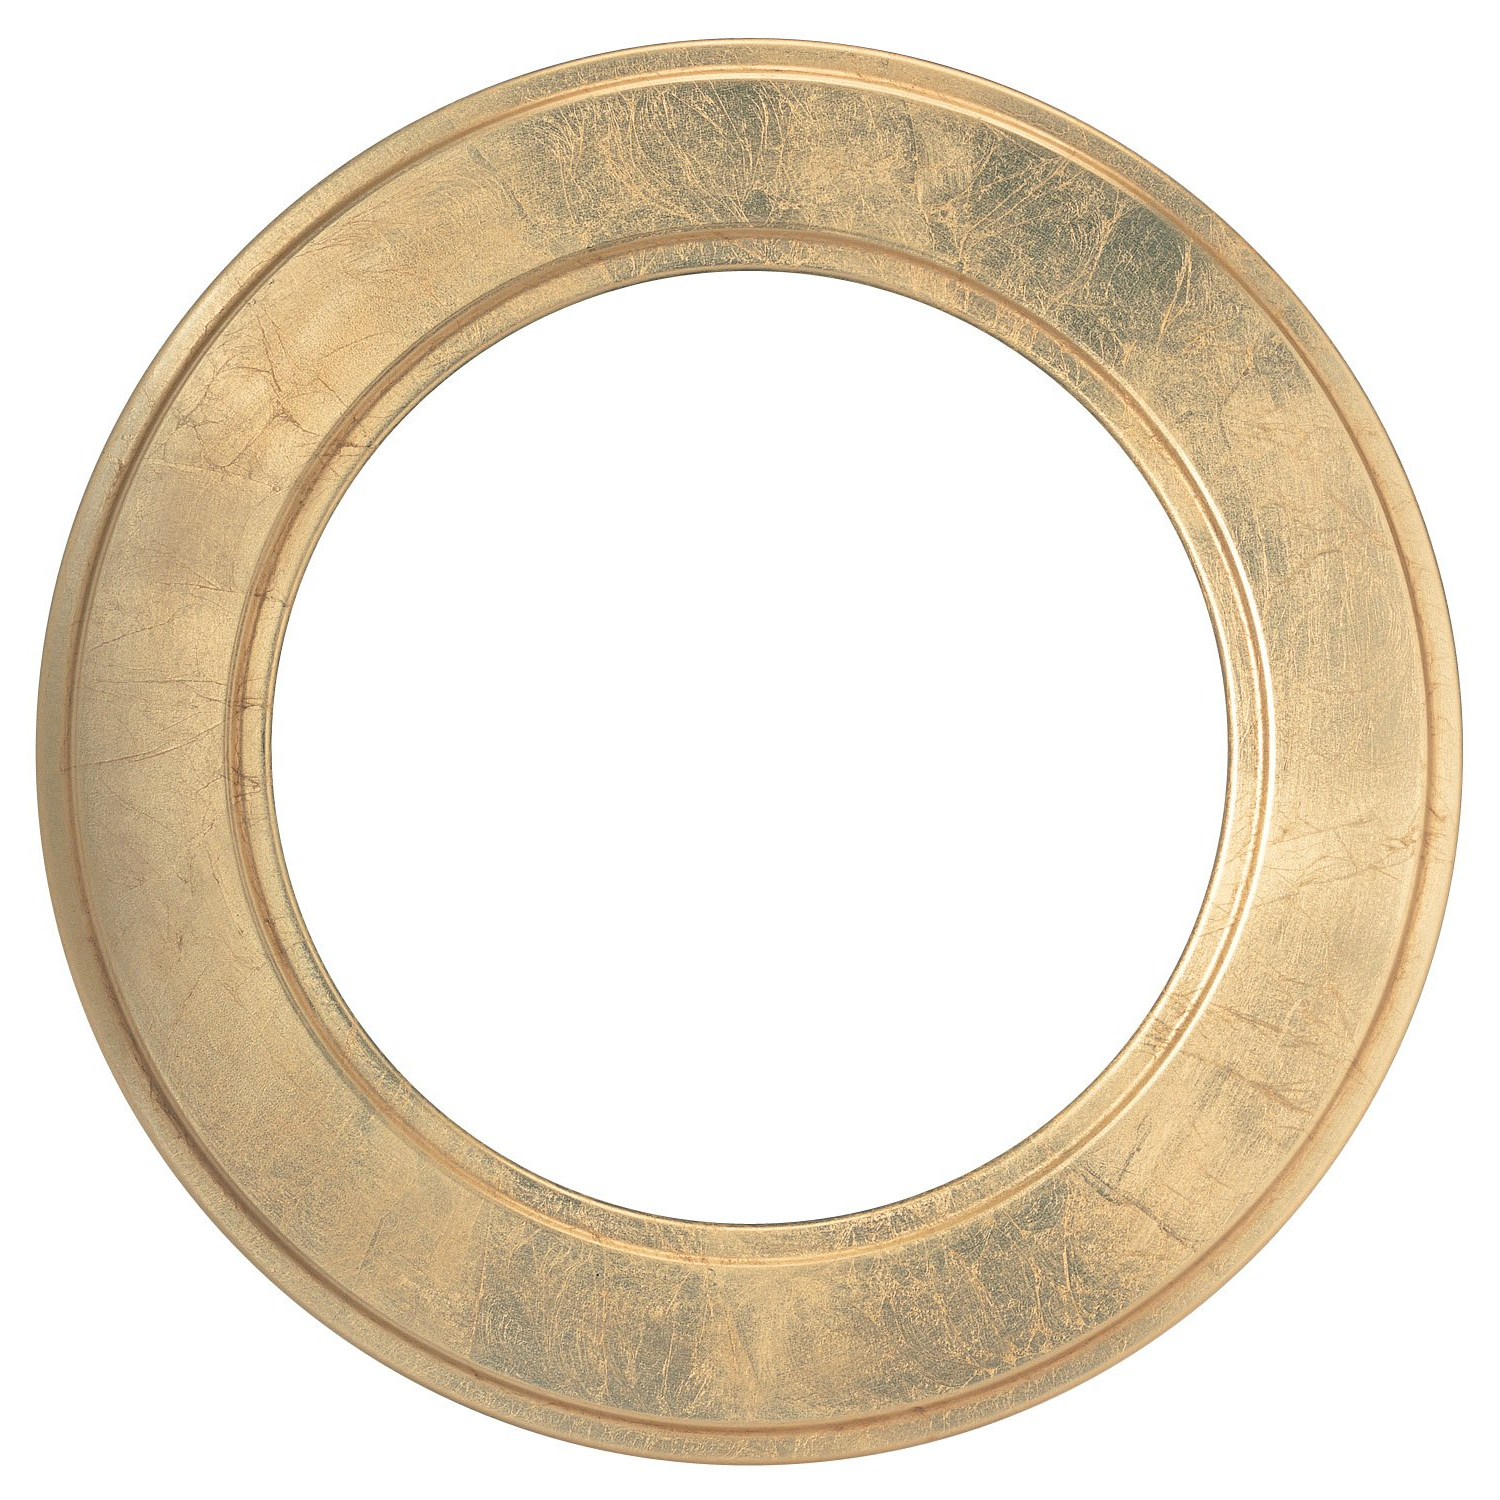 Round Beveled Wall Mirror For Home Decor – Montreal Style – Gold Leaf –  23X23 Outside Dimensions Intended For Most Up To Date Round Beveled Wall Mirrors (Gallery 2 of 20)